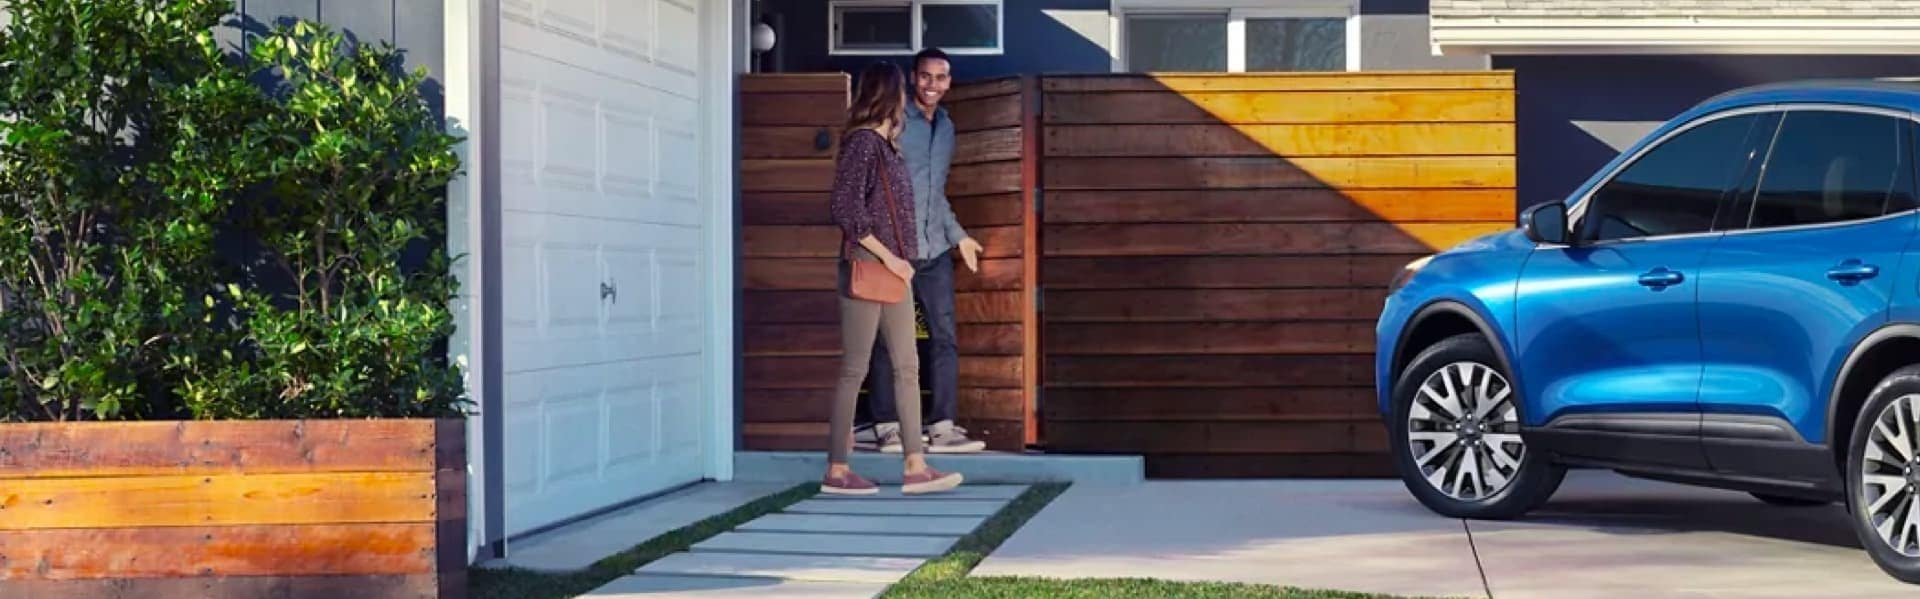 Man and woman walking from the entrance of a house to a blue Crossover SUV